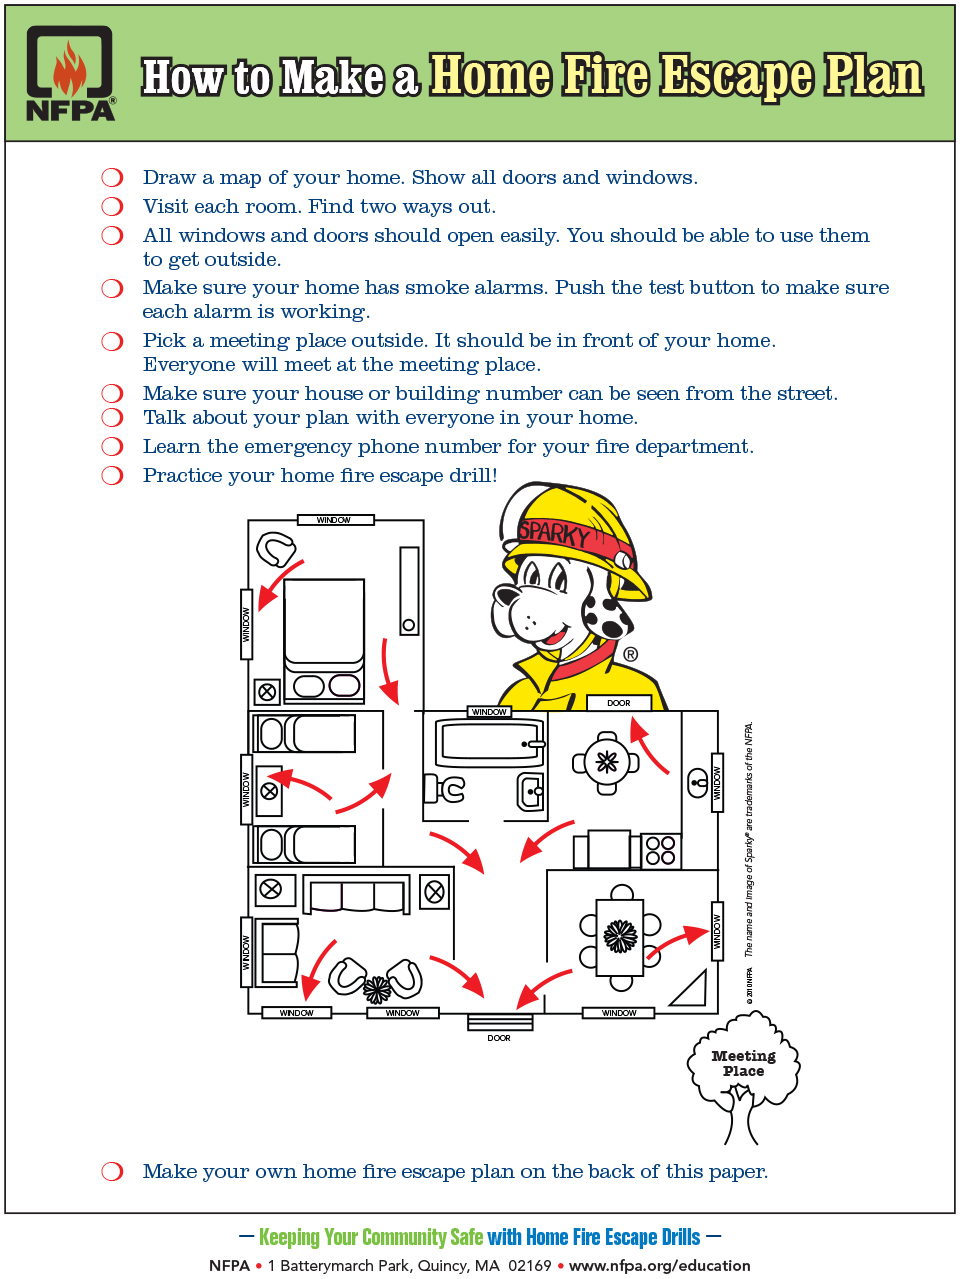 NFPA - How to make a home fire escape plan